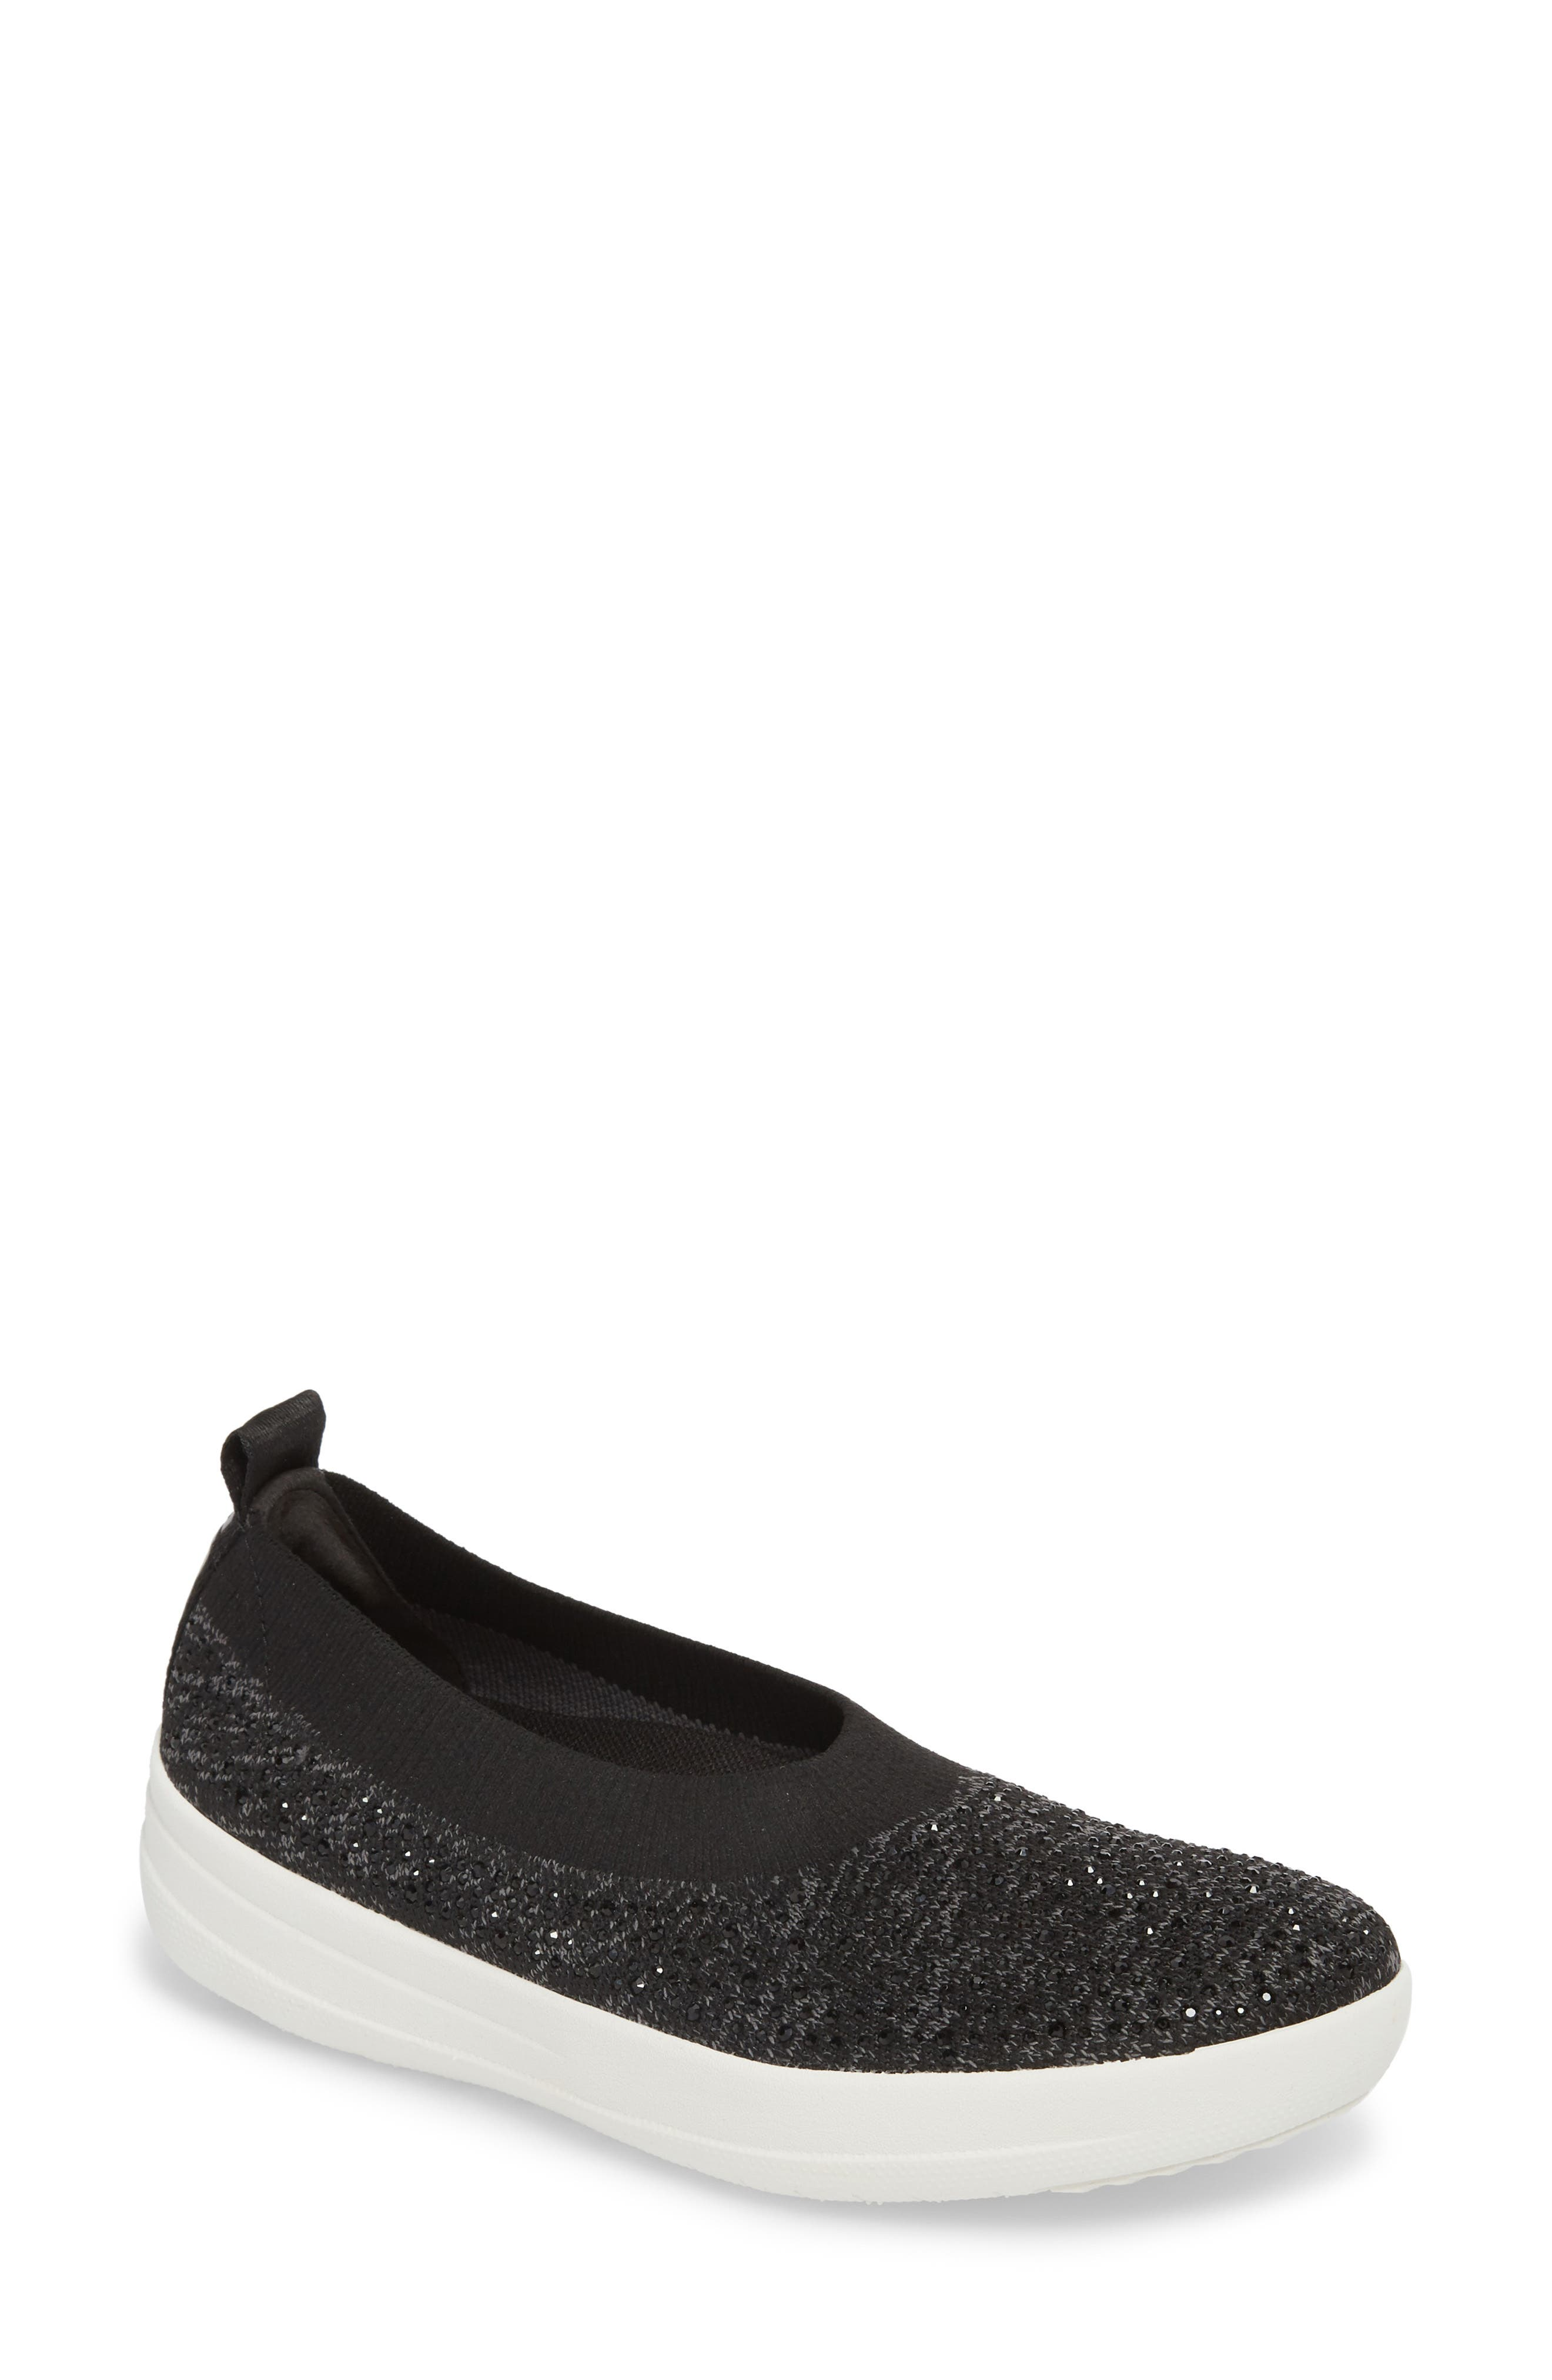 Uberknit Slip-On Sneaker,                             Main thumbnail 1, color,                             BLACK/ SOFT GREY